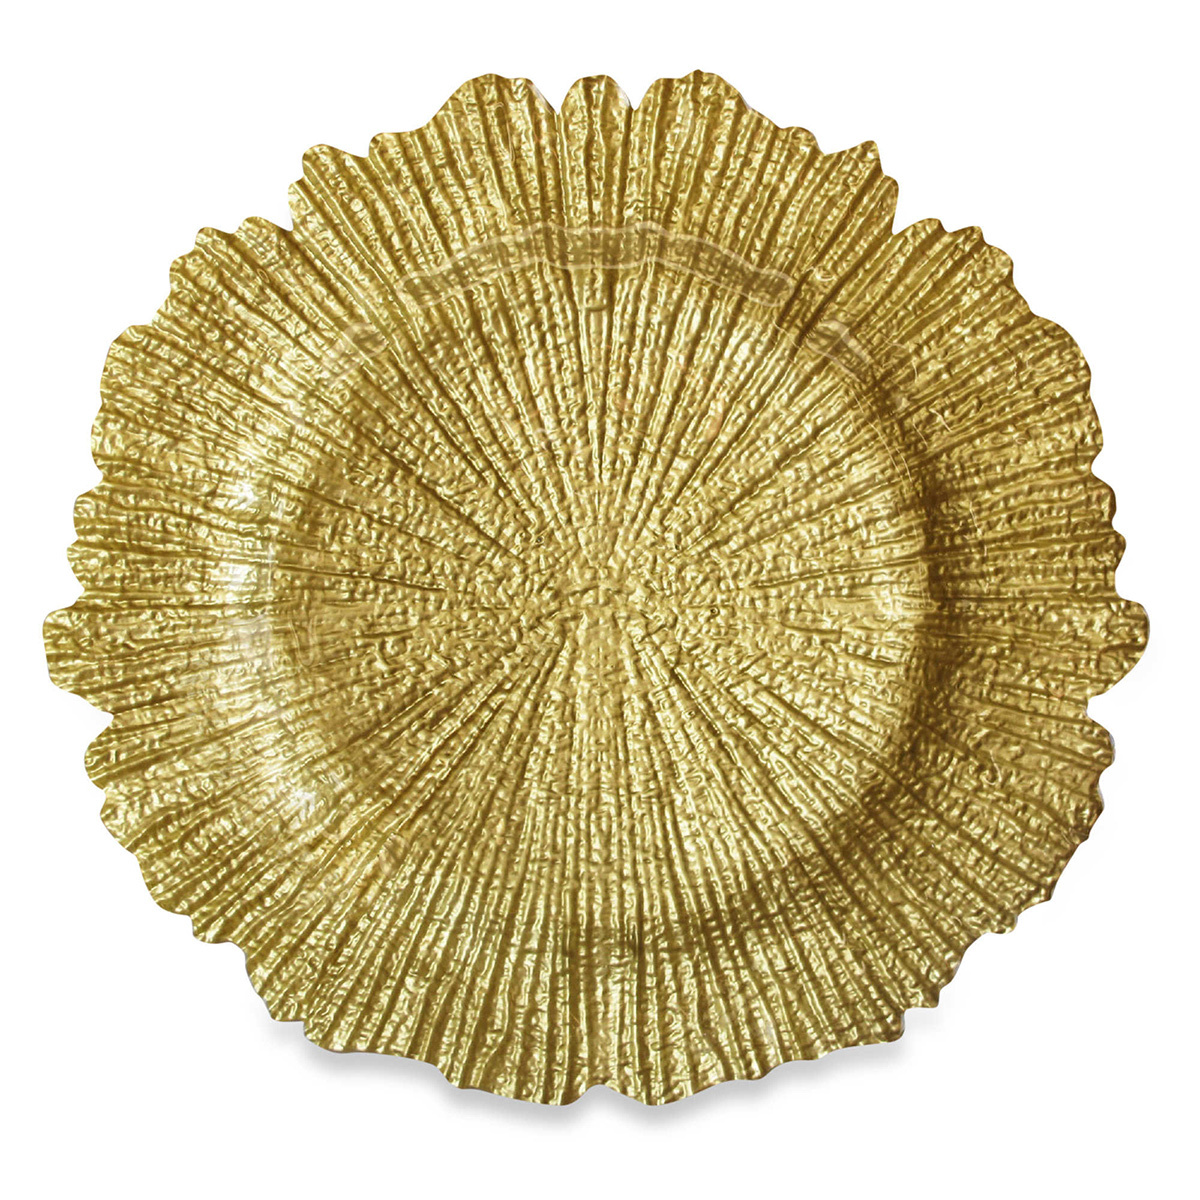 Glittering gold charger plate with a unique, rigid design photo